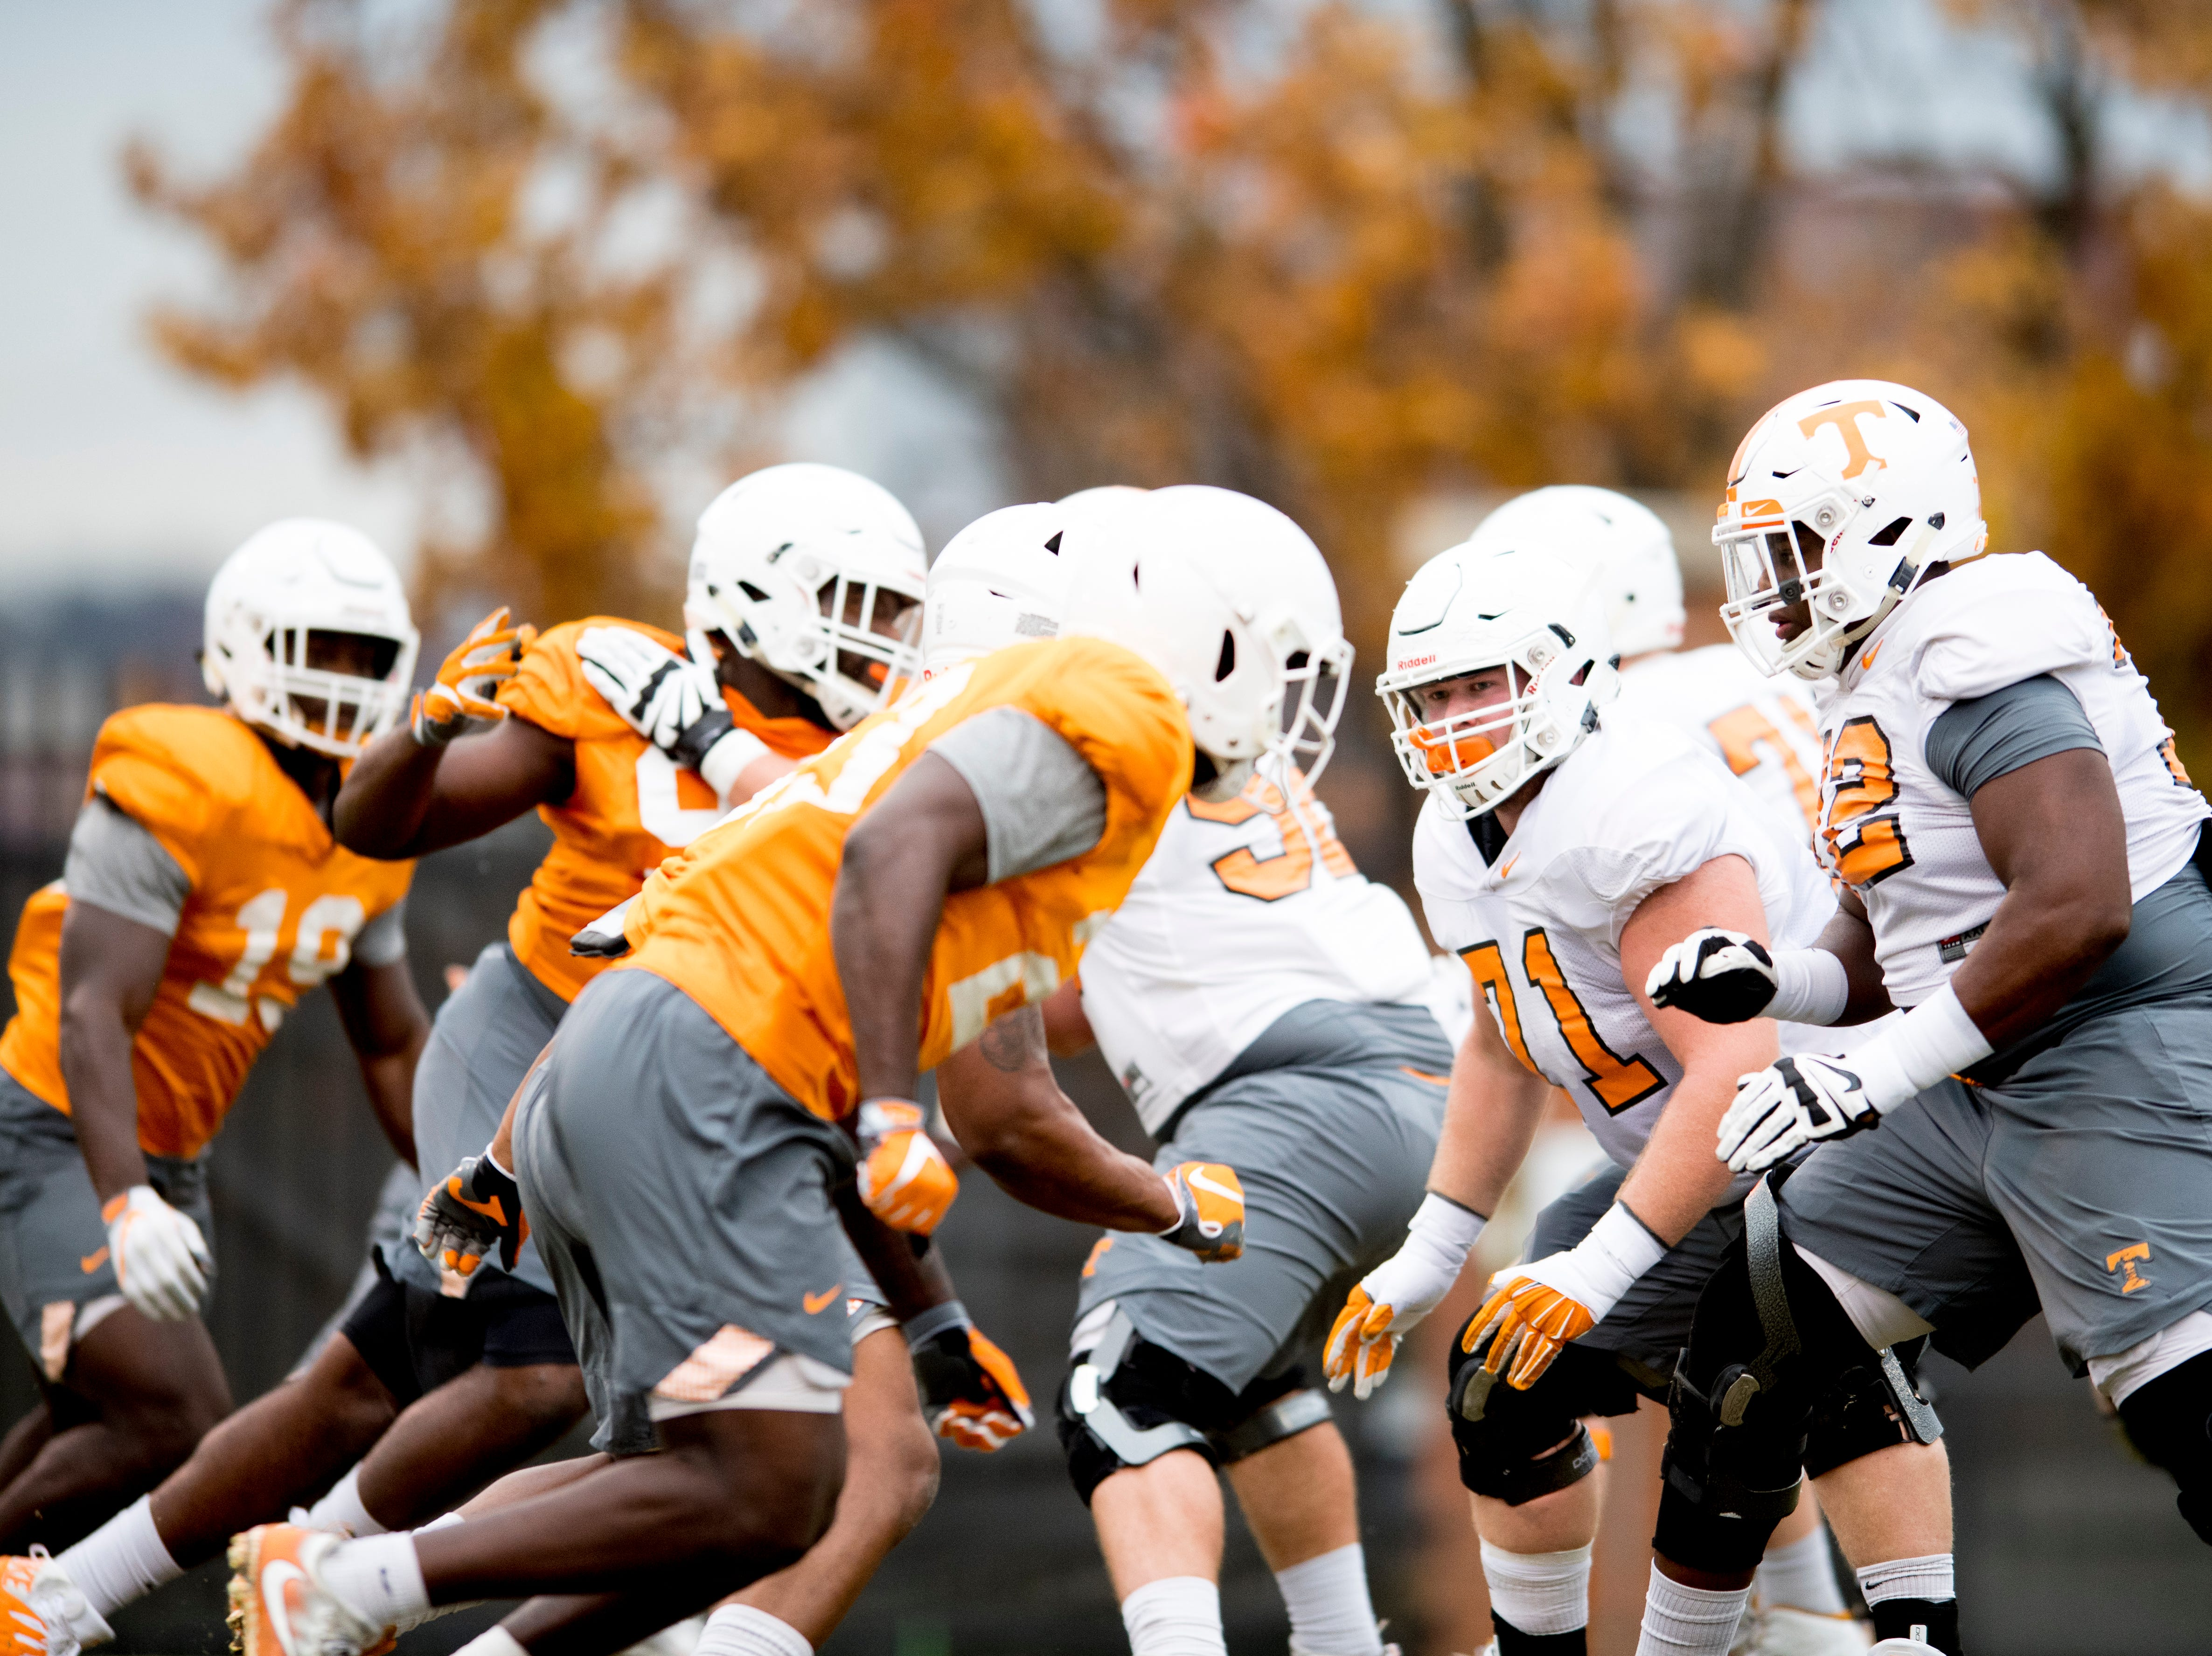 Players drill during Tennessee fall football practice at Haslam Field in Knoxville, Tennessee on Wednesday, November 7, 2018.